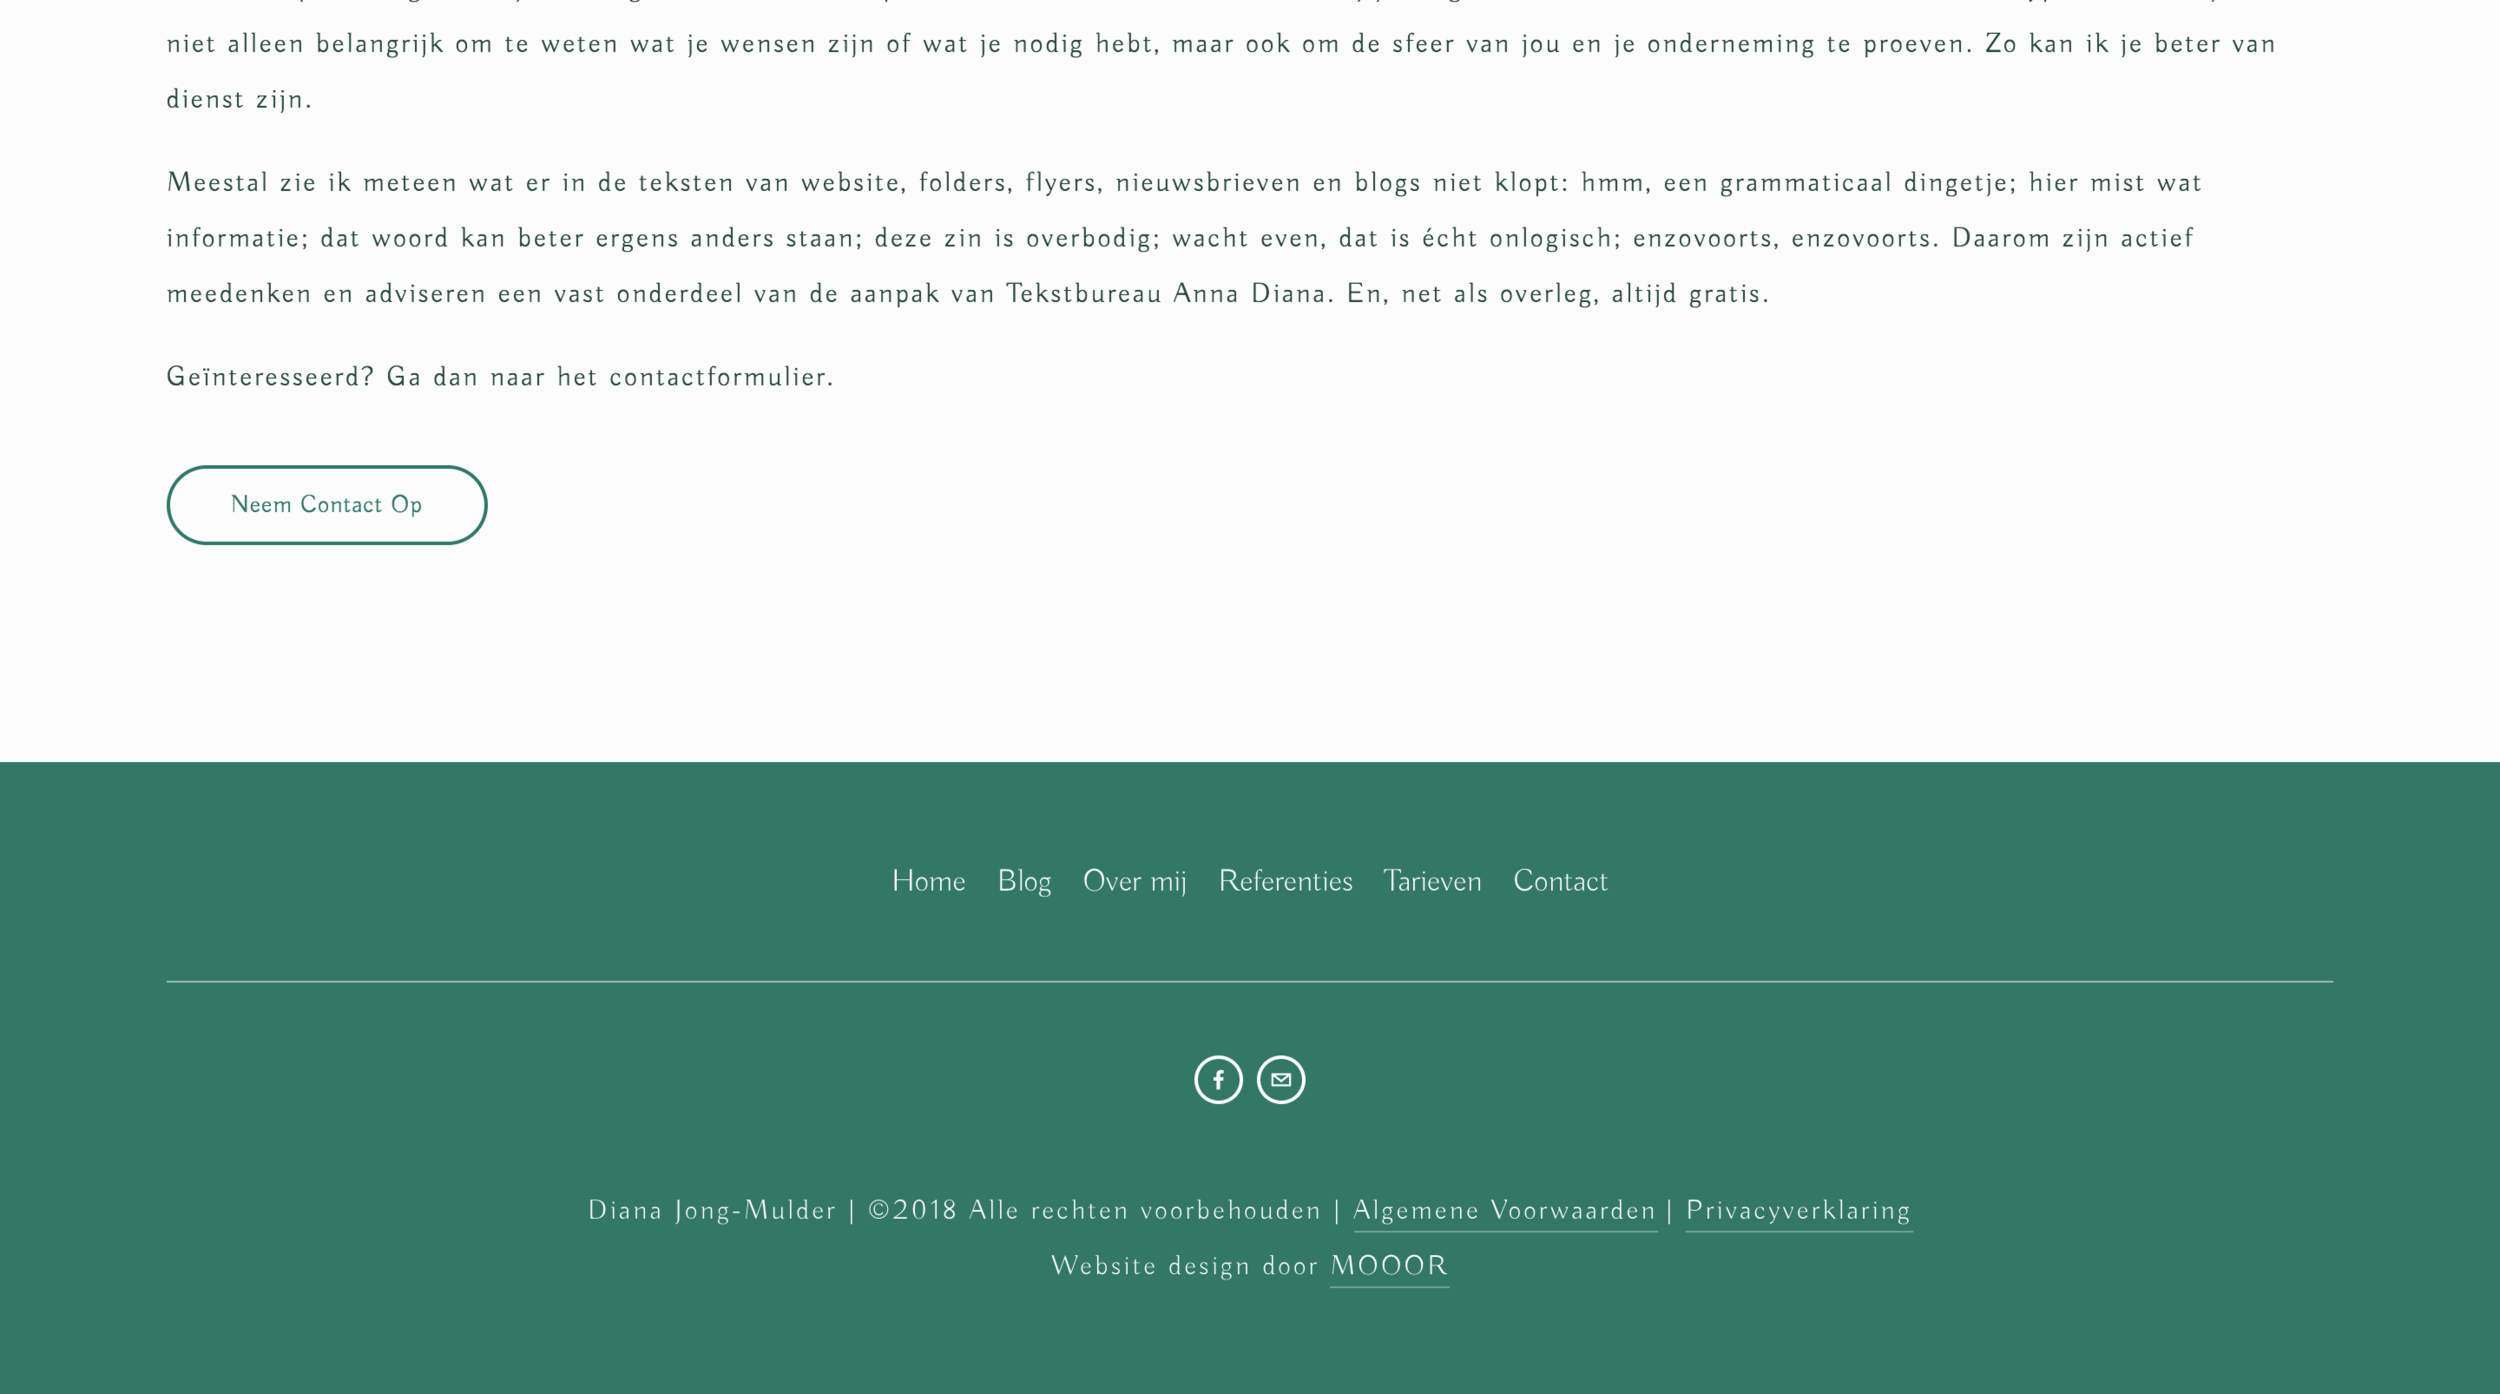 Extended menue in footer